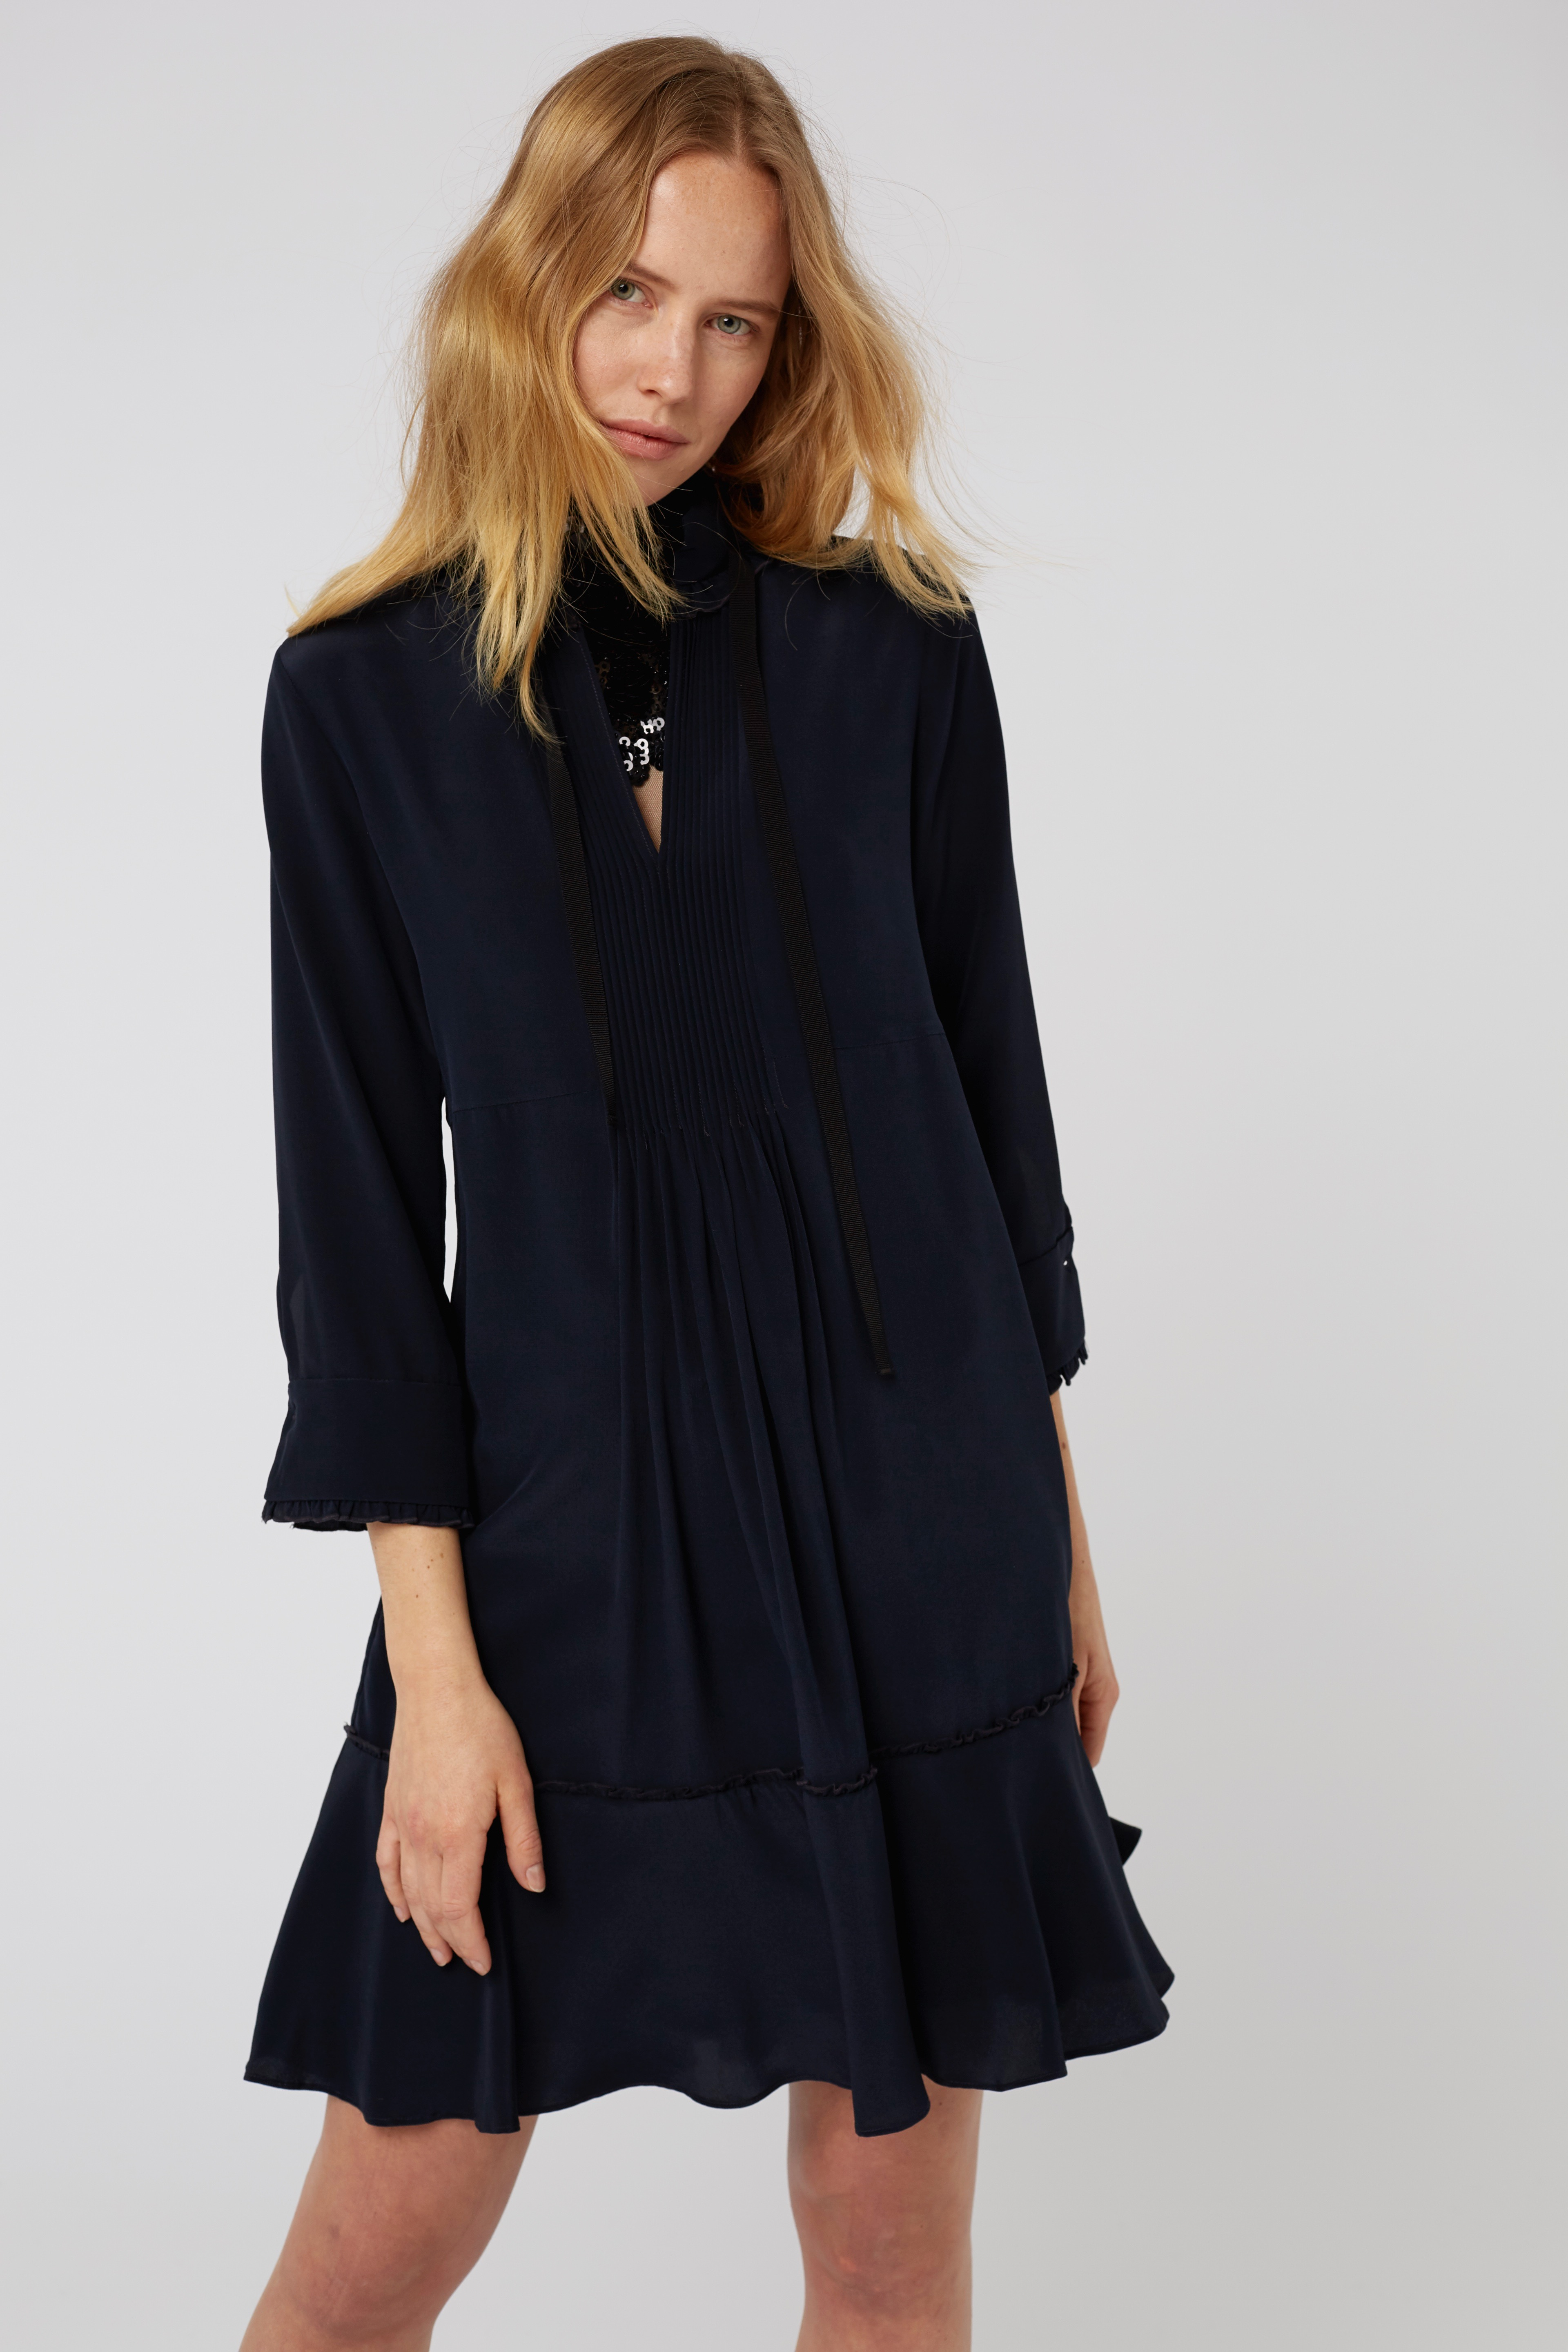 Buy Cheap Supply Cheap Sale With Paypal FLOATY FINESSE dress 2 Dorothee Schumacher Free Shipping Clearance Buy Cheap View Q3v4k